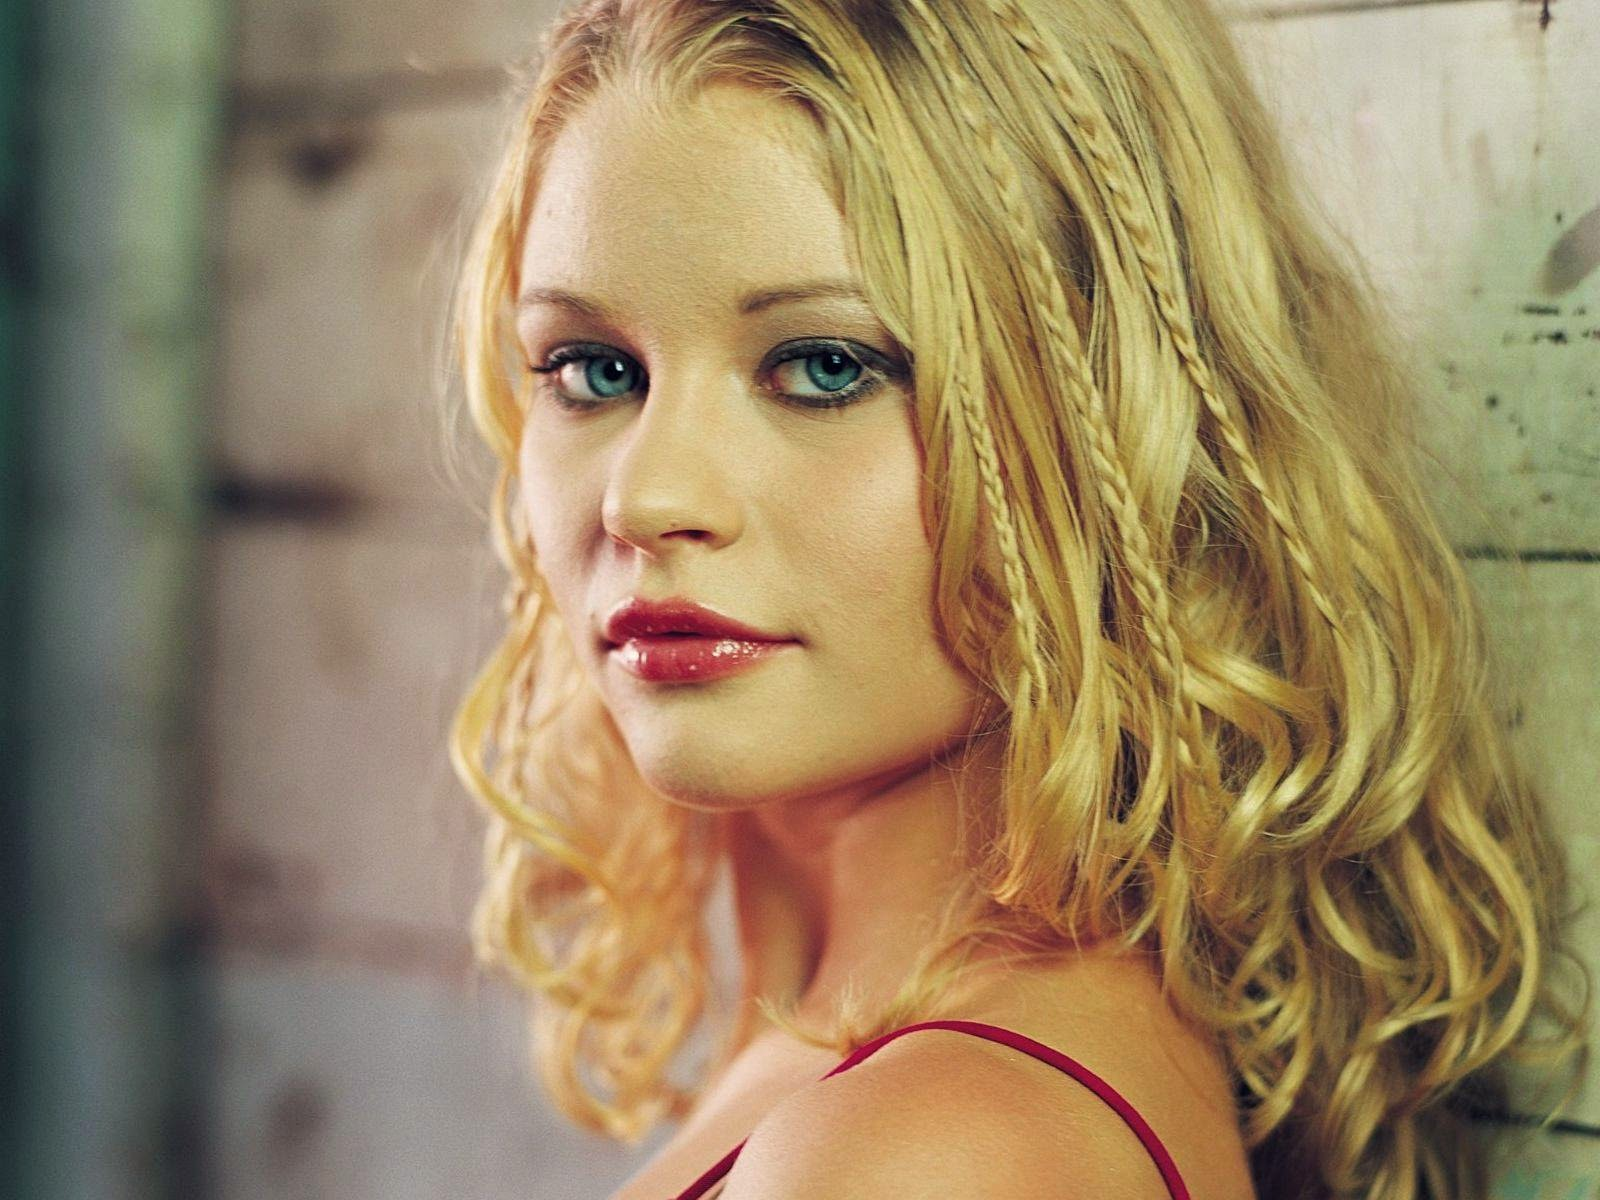 Emilie de Ravin Hd Wallpapers Free Download